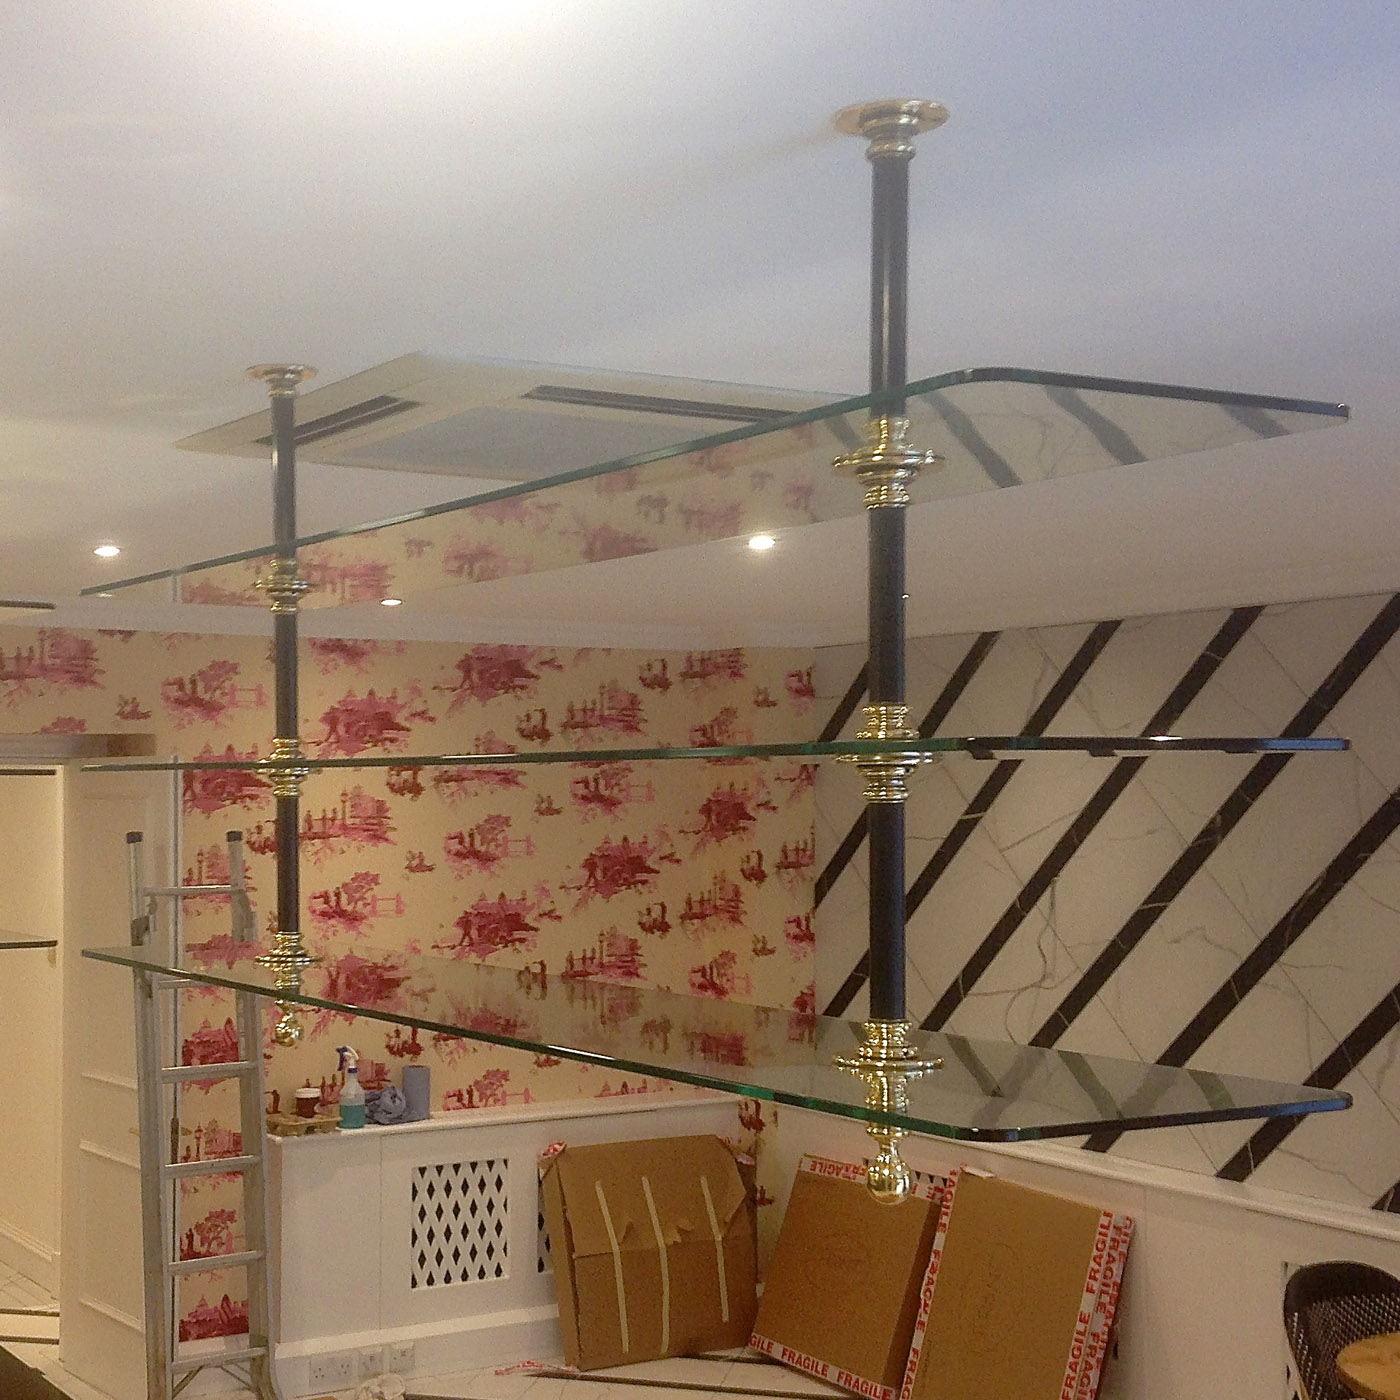 Nickel Plated Ceiling Rack With Glass Shelves